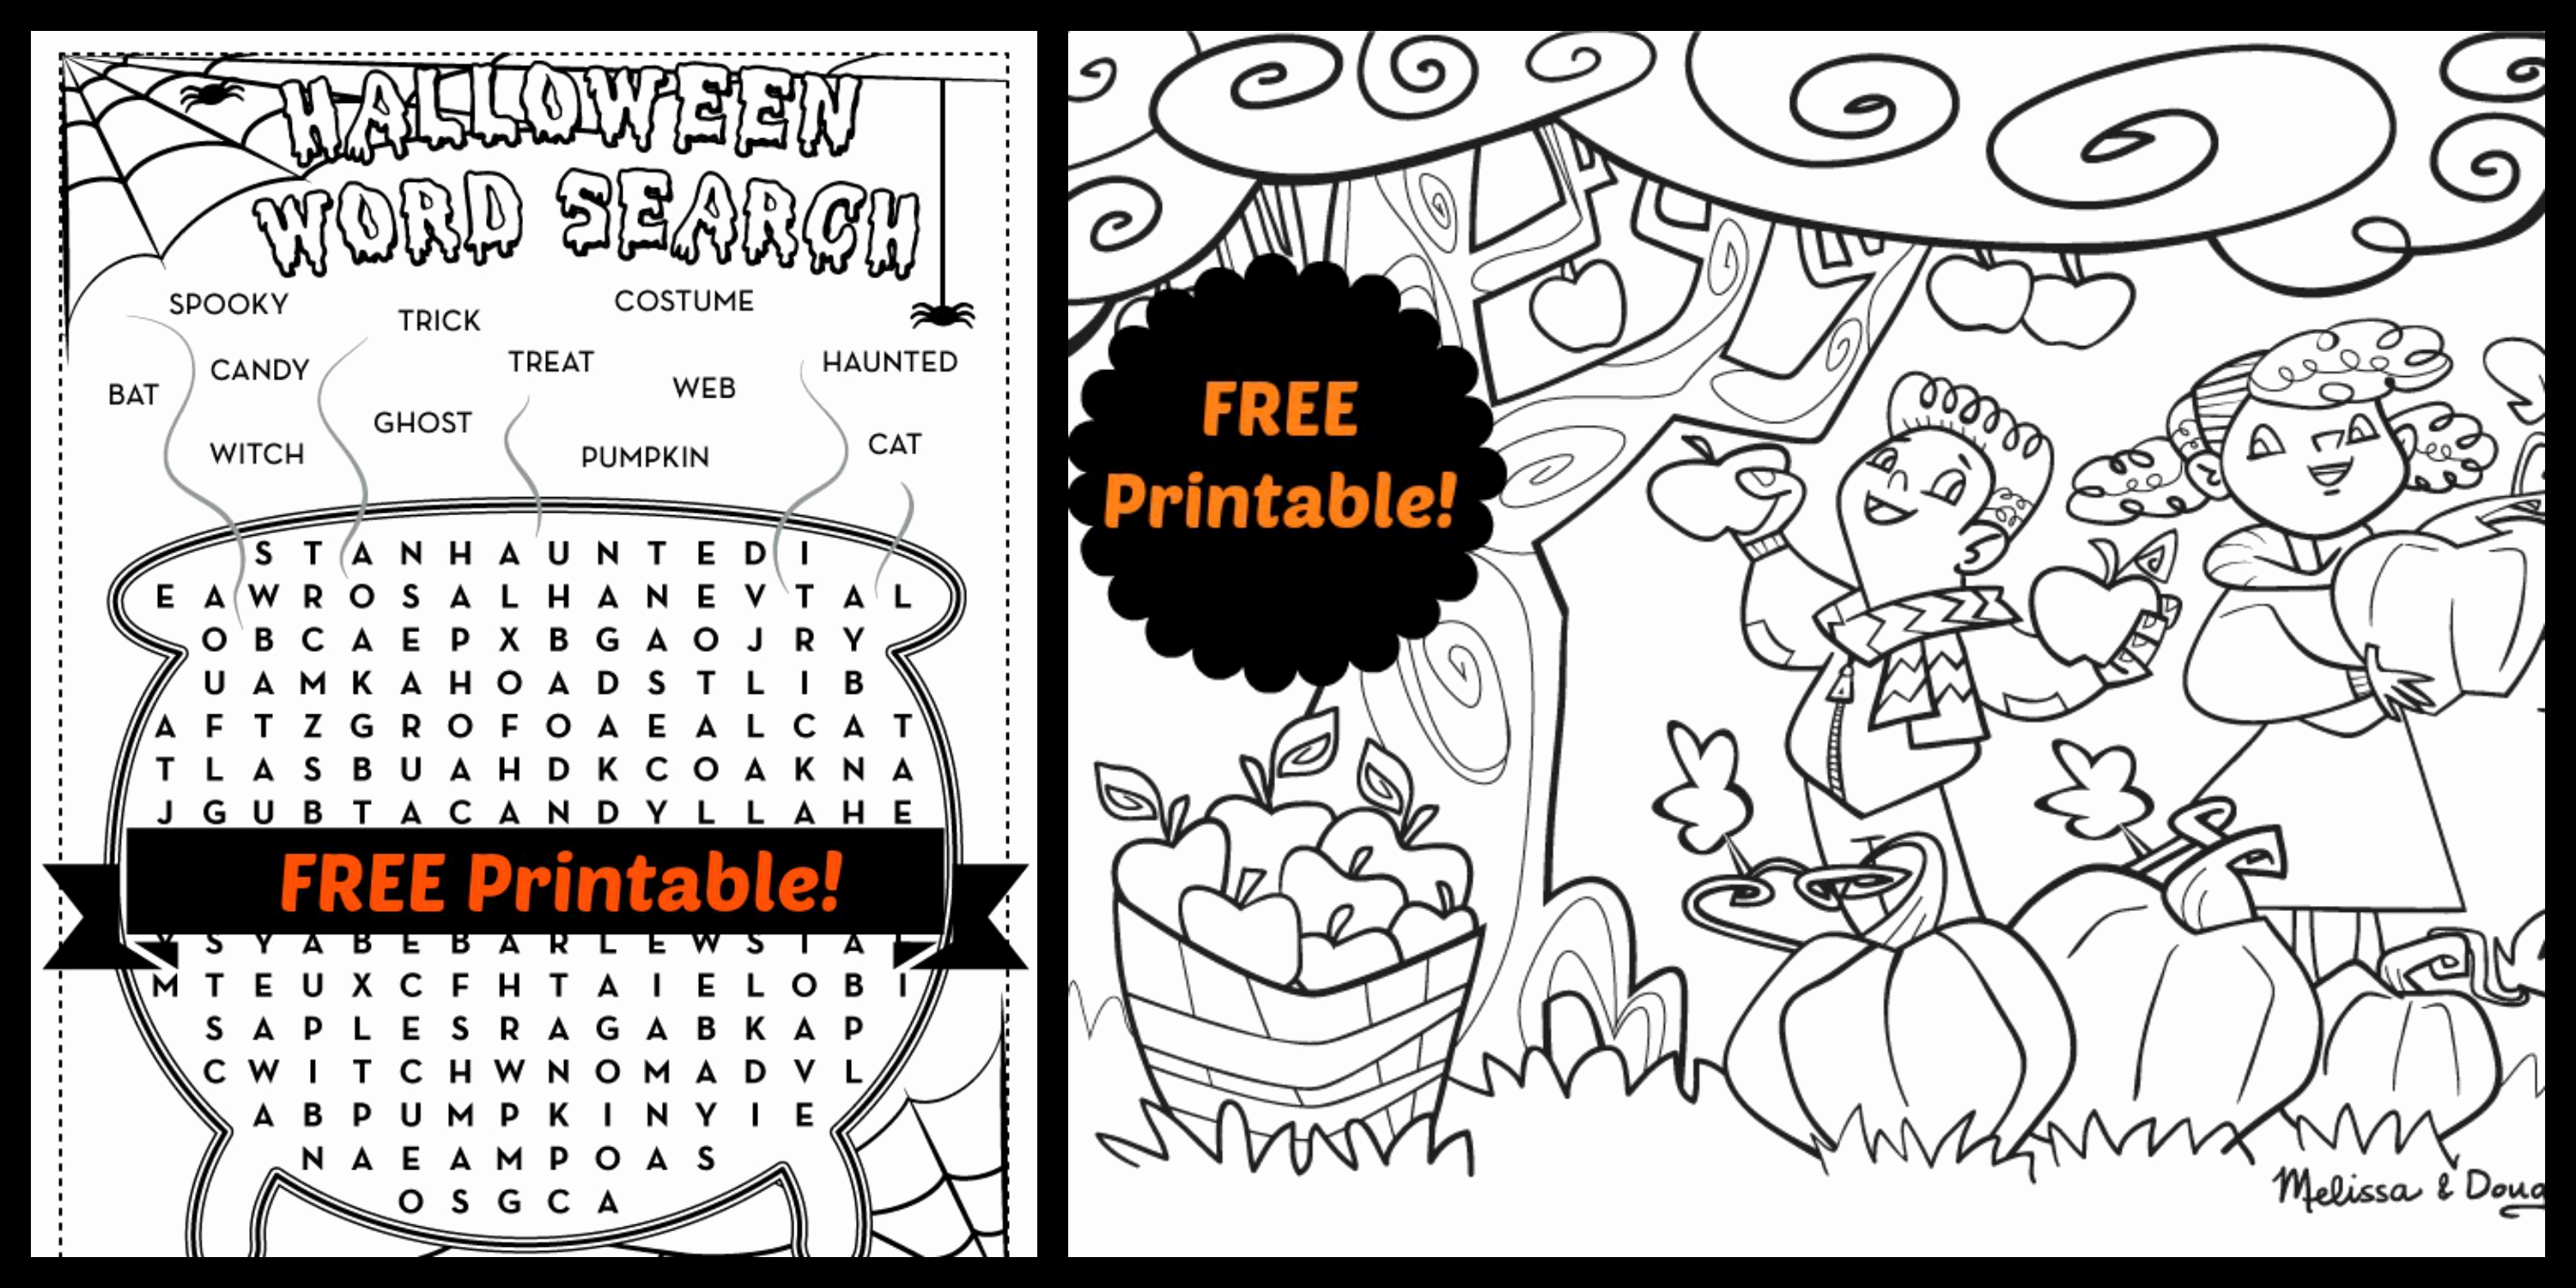 Free Printable Halloween Pictures Luxury Free Halloween Printable Hidden – Festival